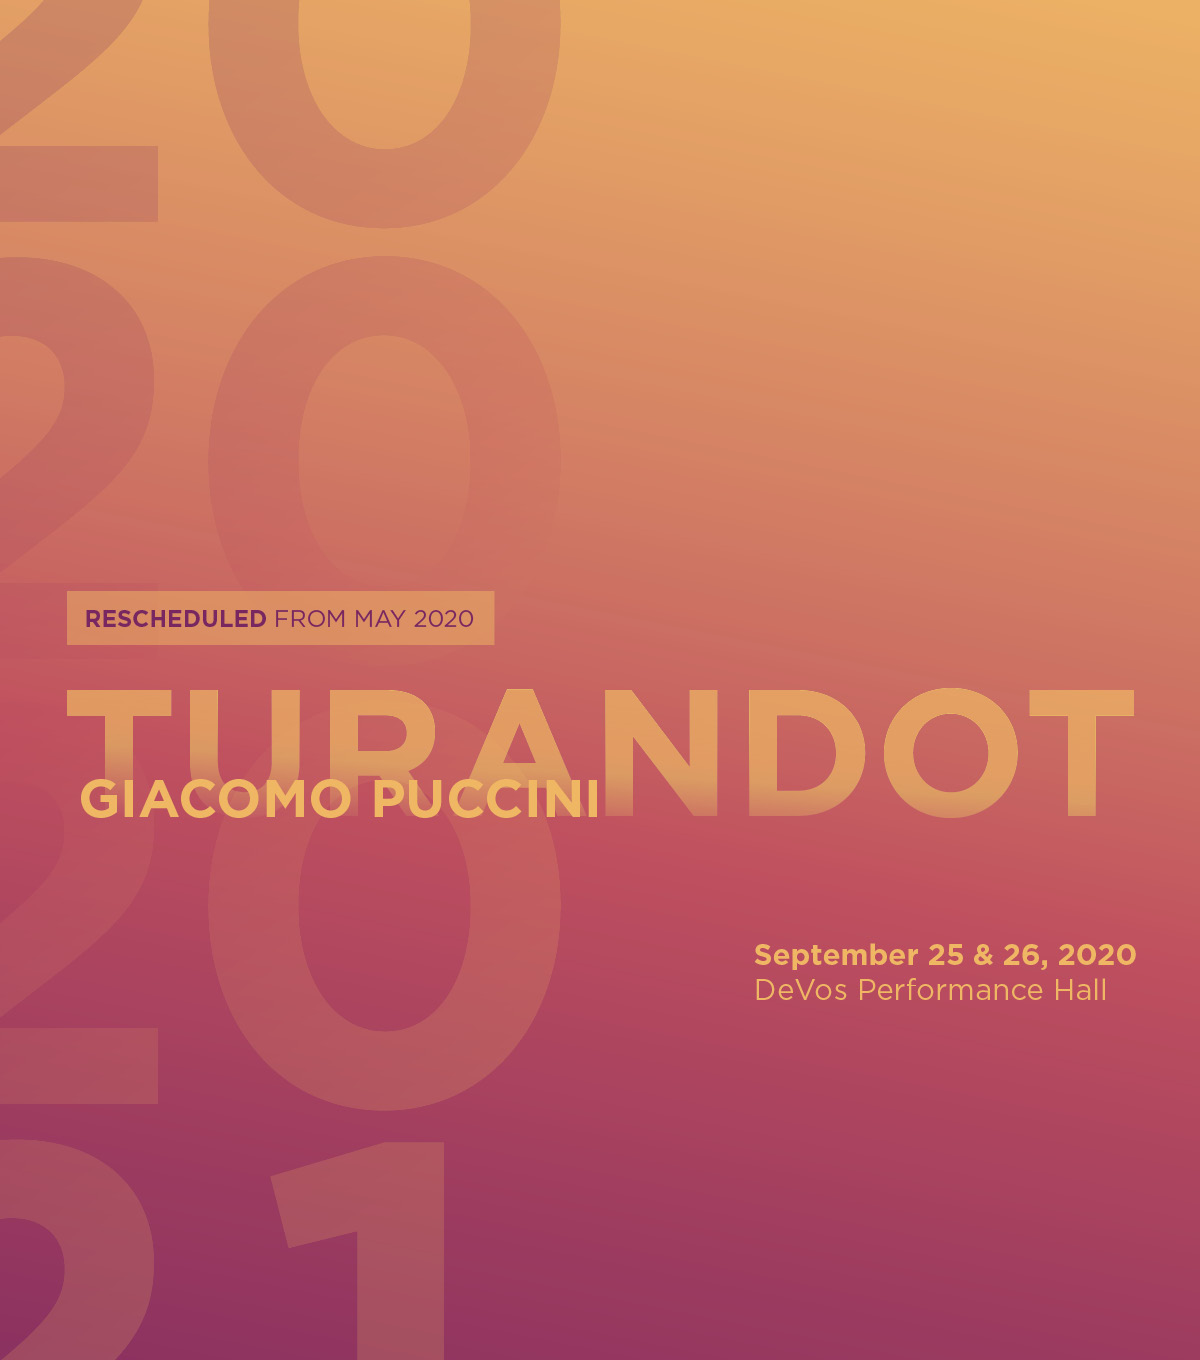 Rescheduled from May 2020; Turandot by Giacomo Puccini - September 25 & 26, 2020; DeVos Performance Hall